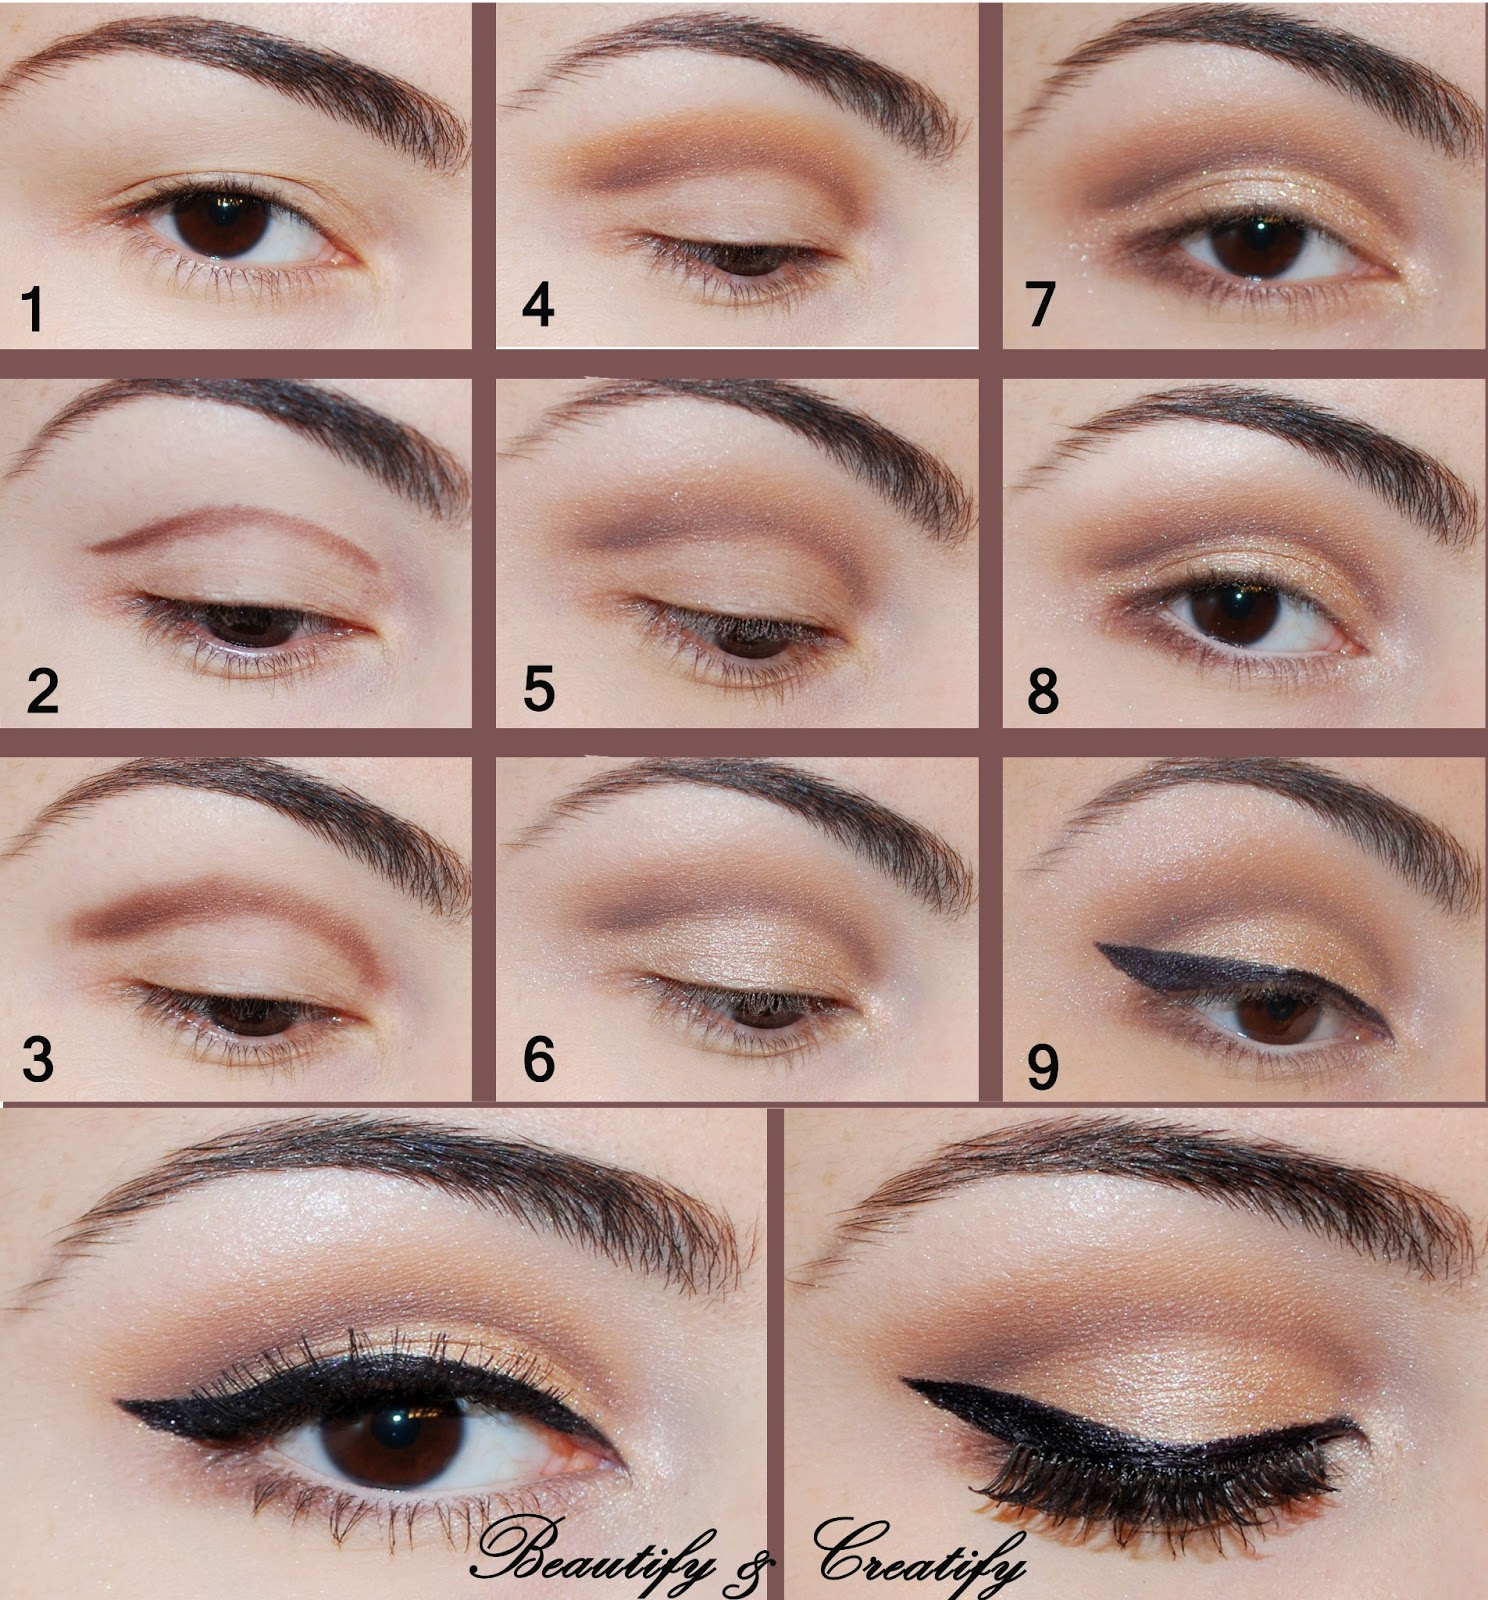 How To Apply Eyeshadow Diagram House Wiring Diagrams With Pictures Beautify And Creatify Elegant Neutral Make Up Look Tutorial